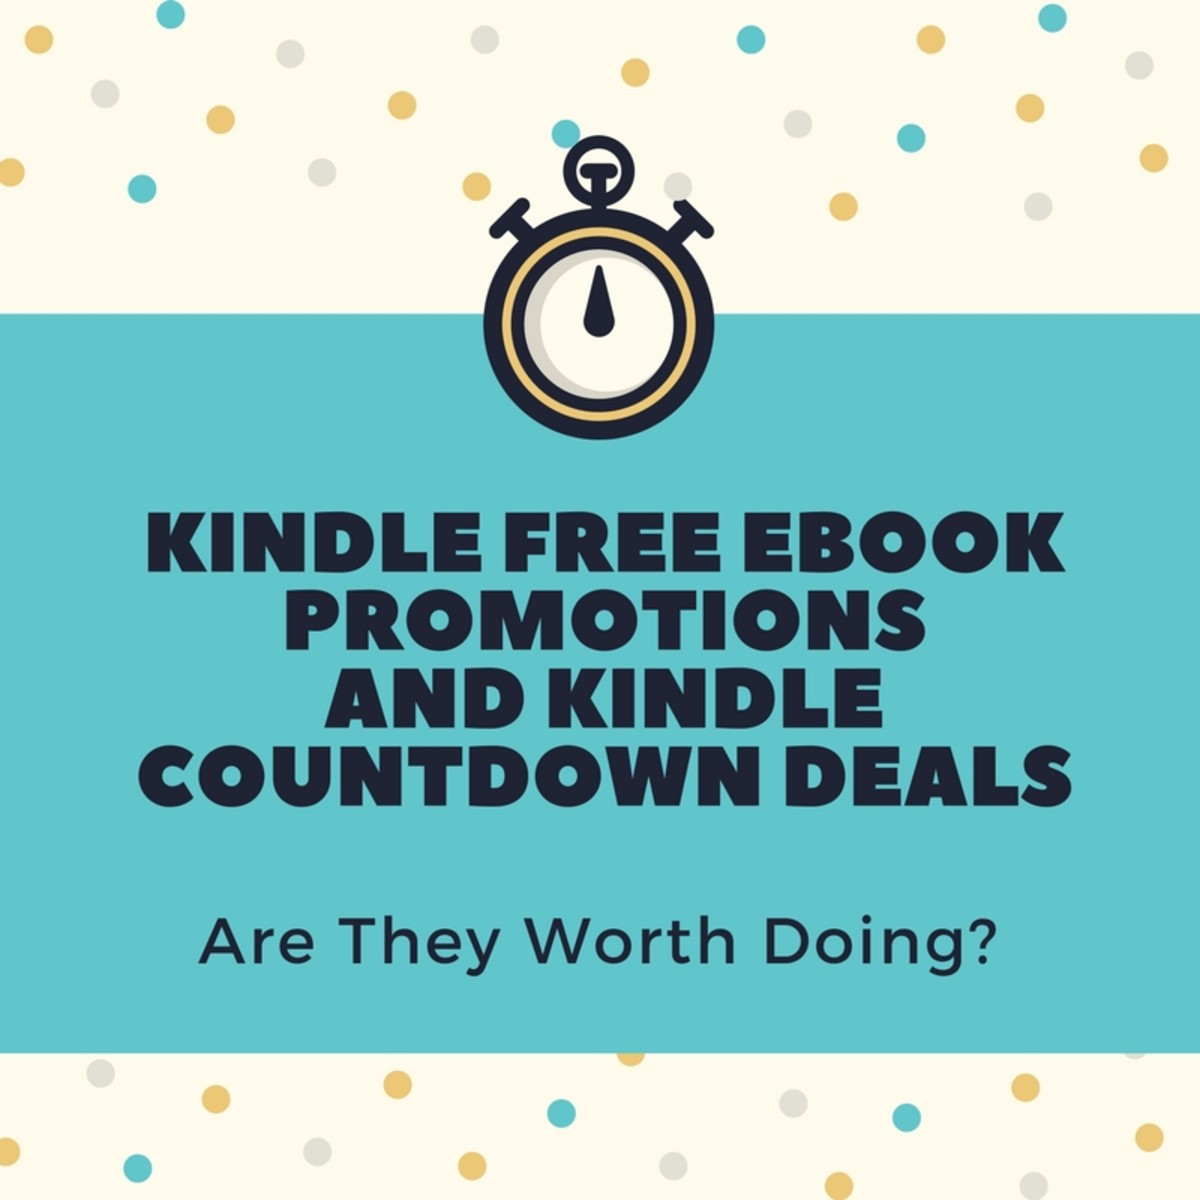 Kindle Free eBook Promotions and Countdown Deals: Are They Worth Doing?